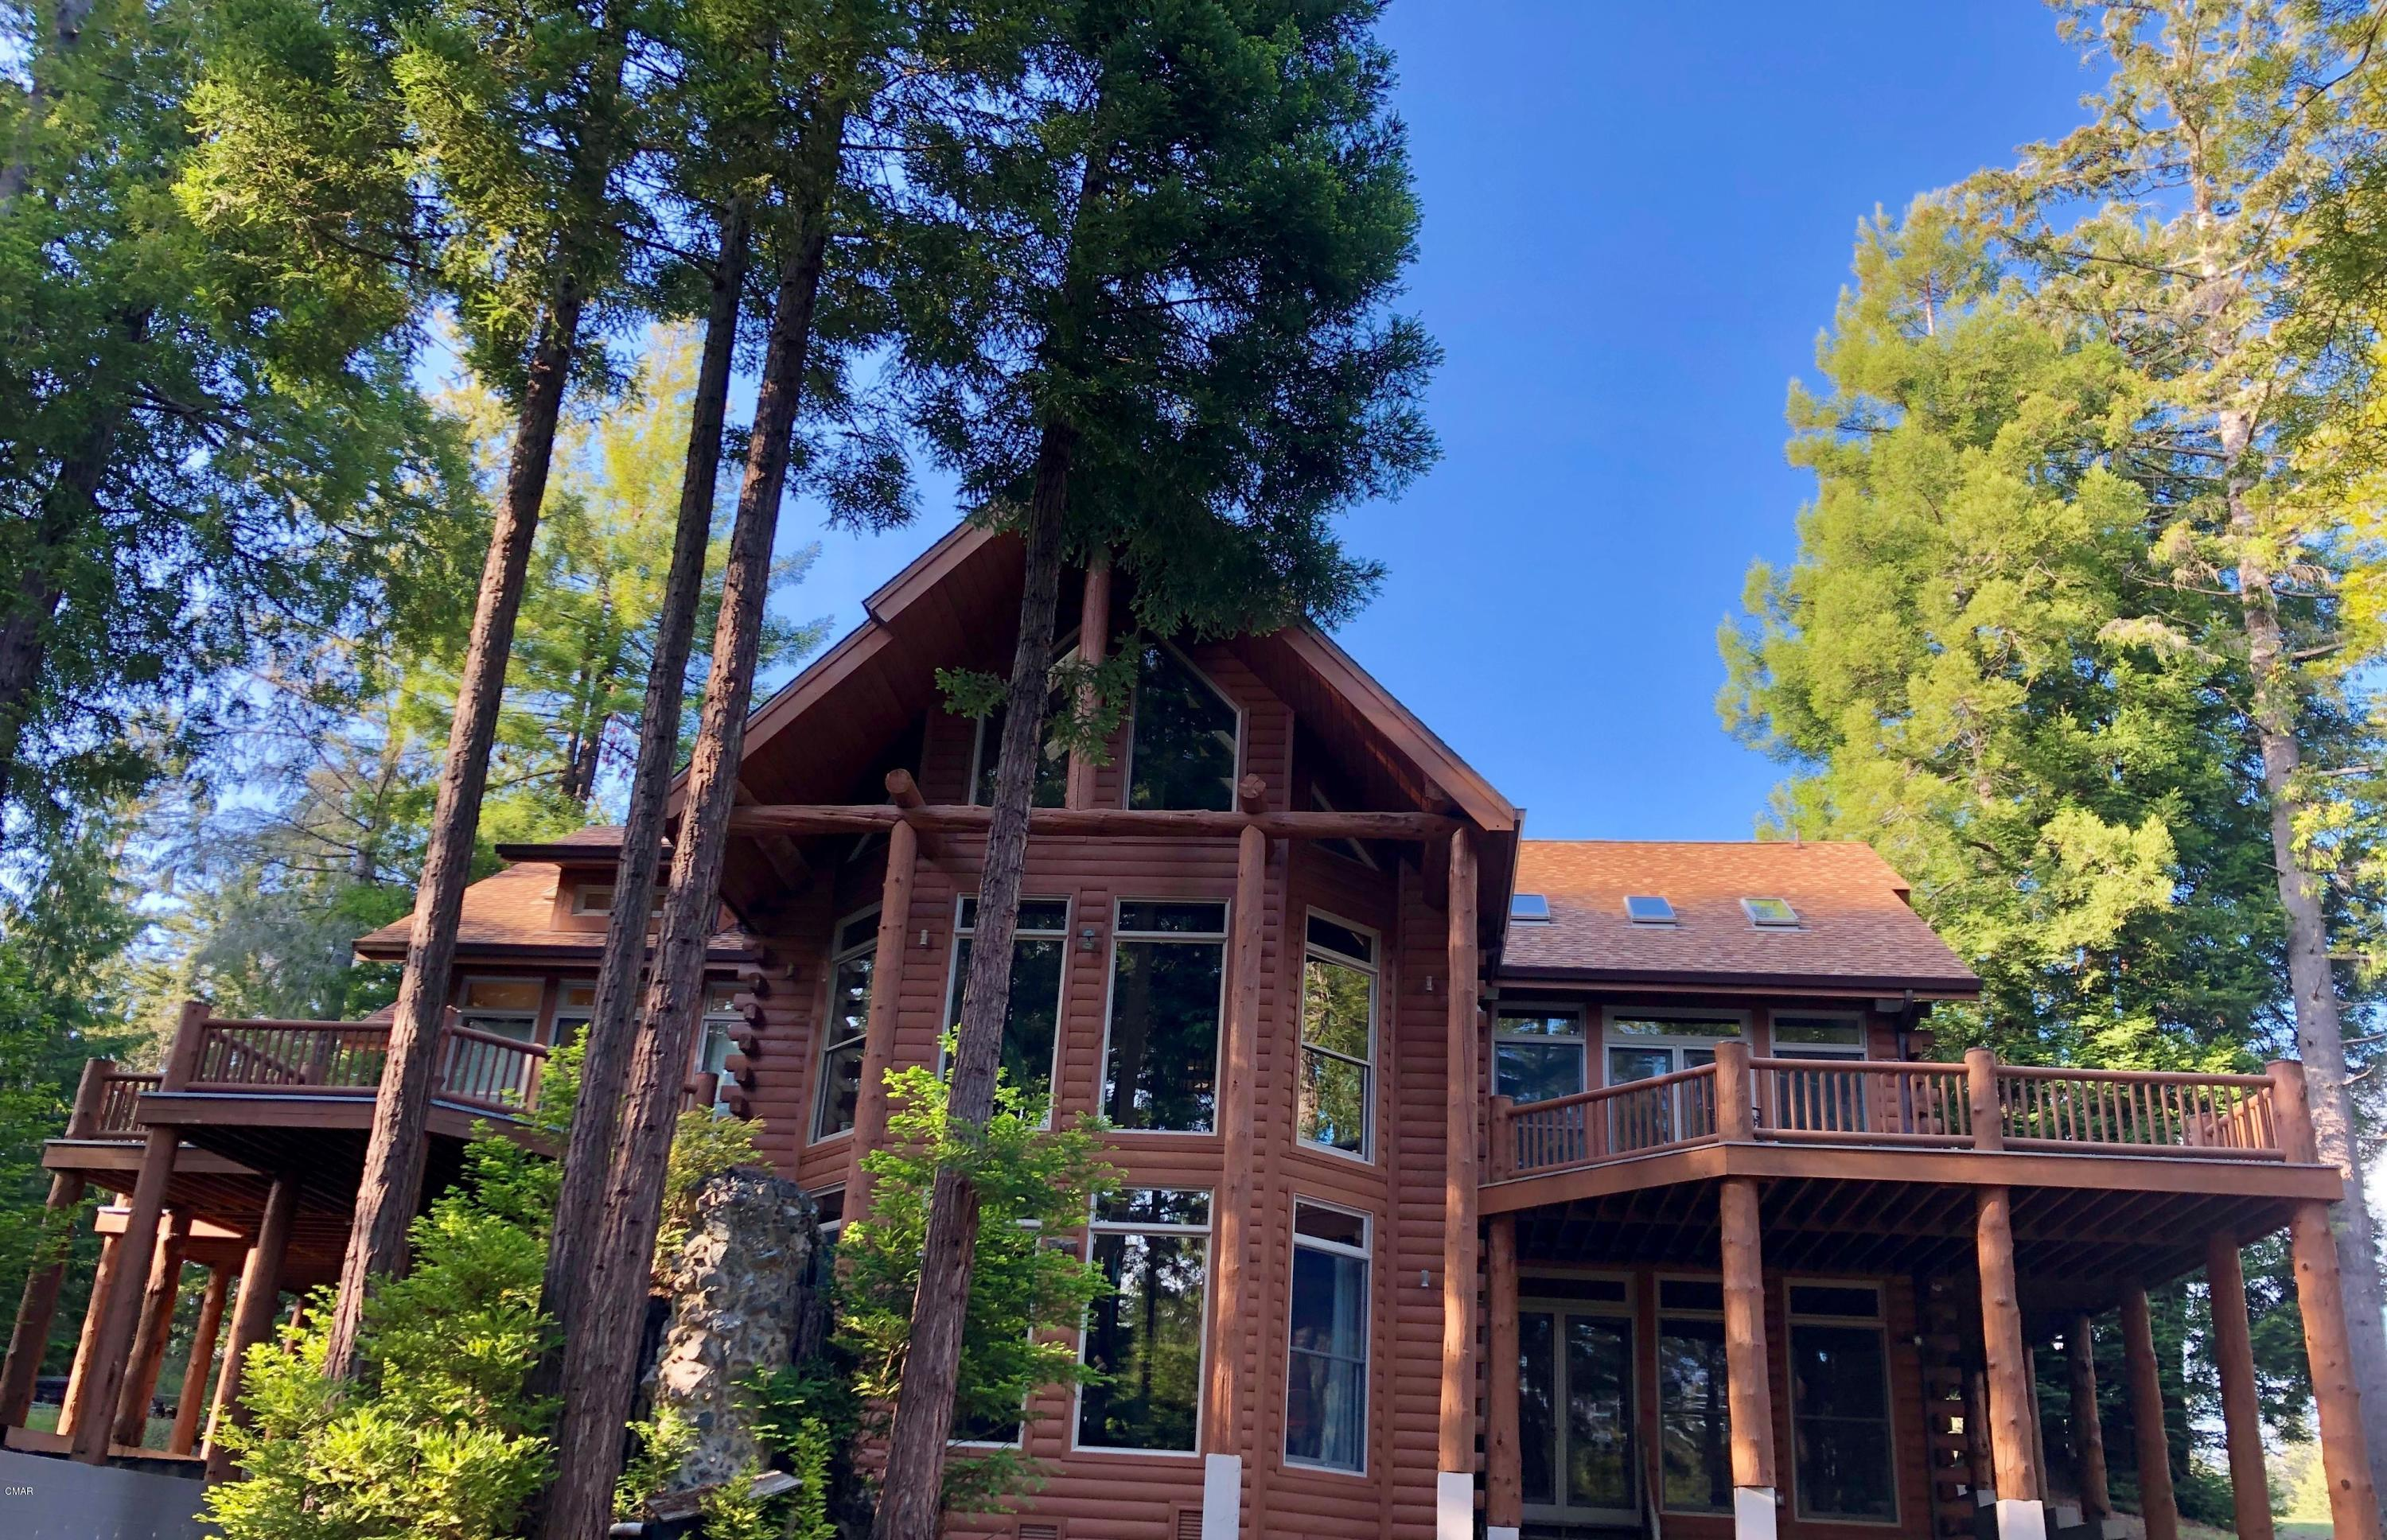 Custom state of the art smart home in the sunbelt off Hwy 20. This multigenerational hybrid log home (logs on the outside, conventional building on the inside) was designed for two families. The home can be a full time home or a family retreat, with unlimited potential to host and entertain friends and family. Fully automated and programmed with award winning Control4 home automation system. The owners can remotely monitor and control the home from anywhere in the world from their mobile devices or iPad. Lighting, security, climate control, entertainment, intercom, light and water sensors, automated shades, motorized skylights, enterprise WiFi, distributed audio, and a dedicated THX surround sound theater makes this custom home one of its kind on the coast. This beautiful six bedroom, four